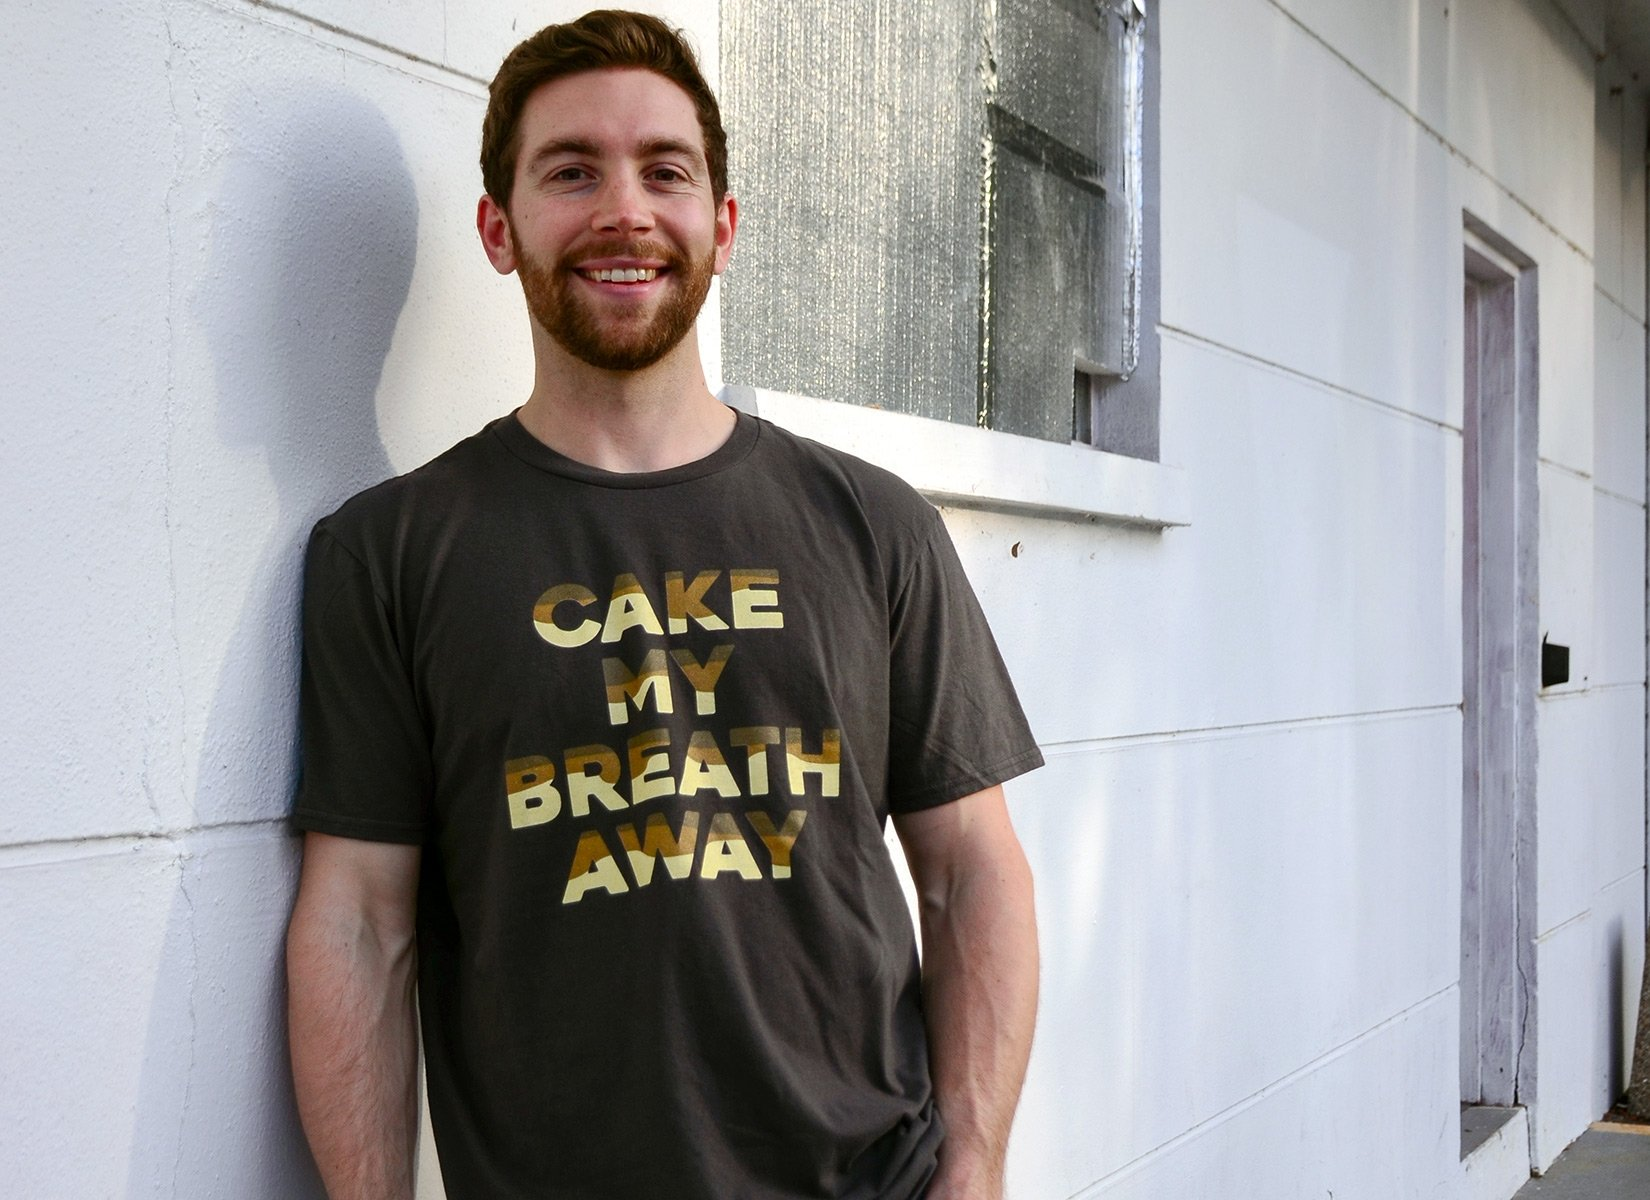 Cake My Breath Away on Mens T-Shirt